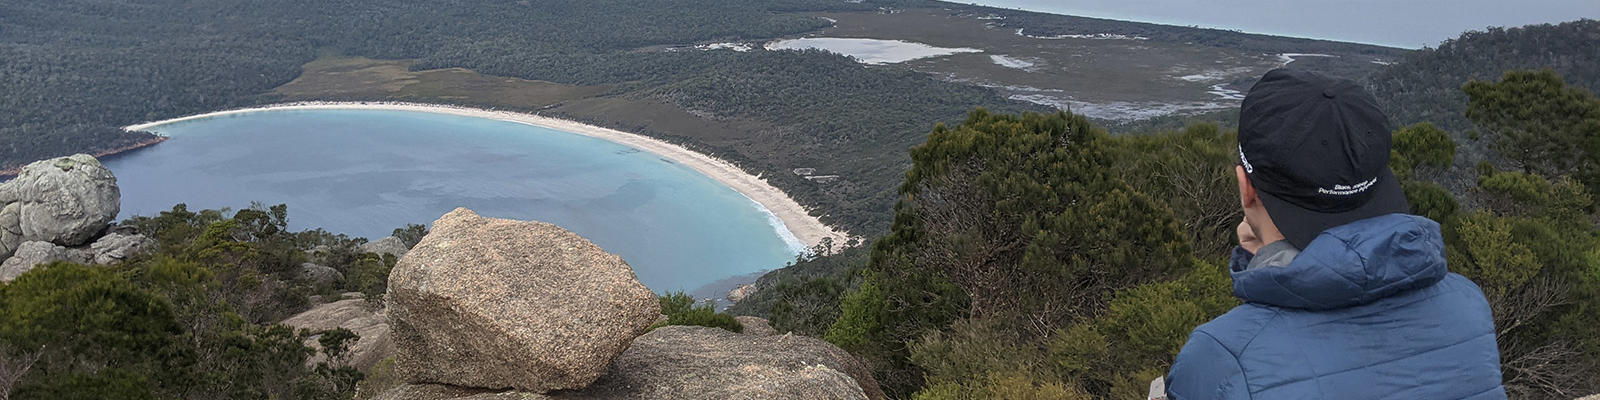 mt amos view over wineglass bay